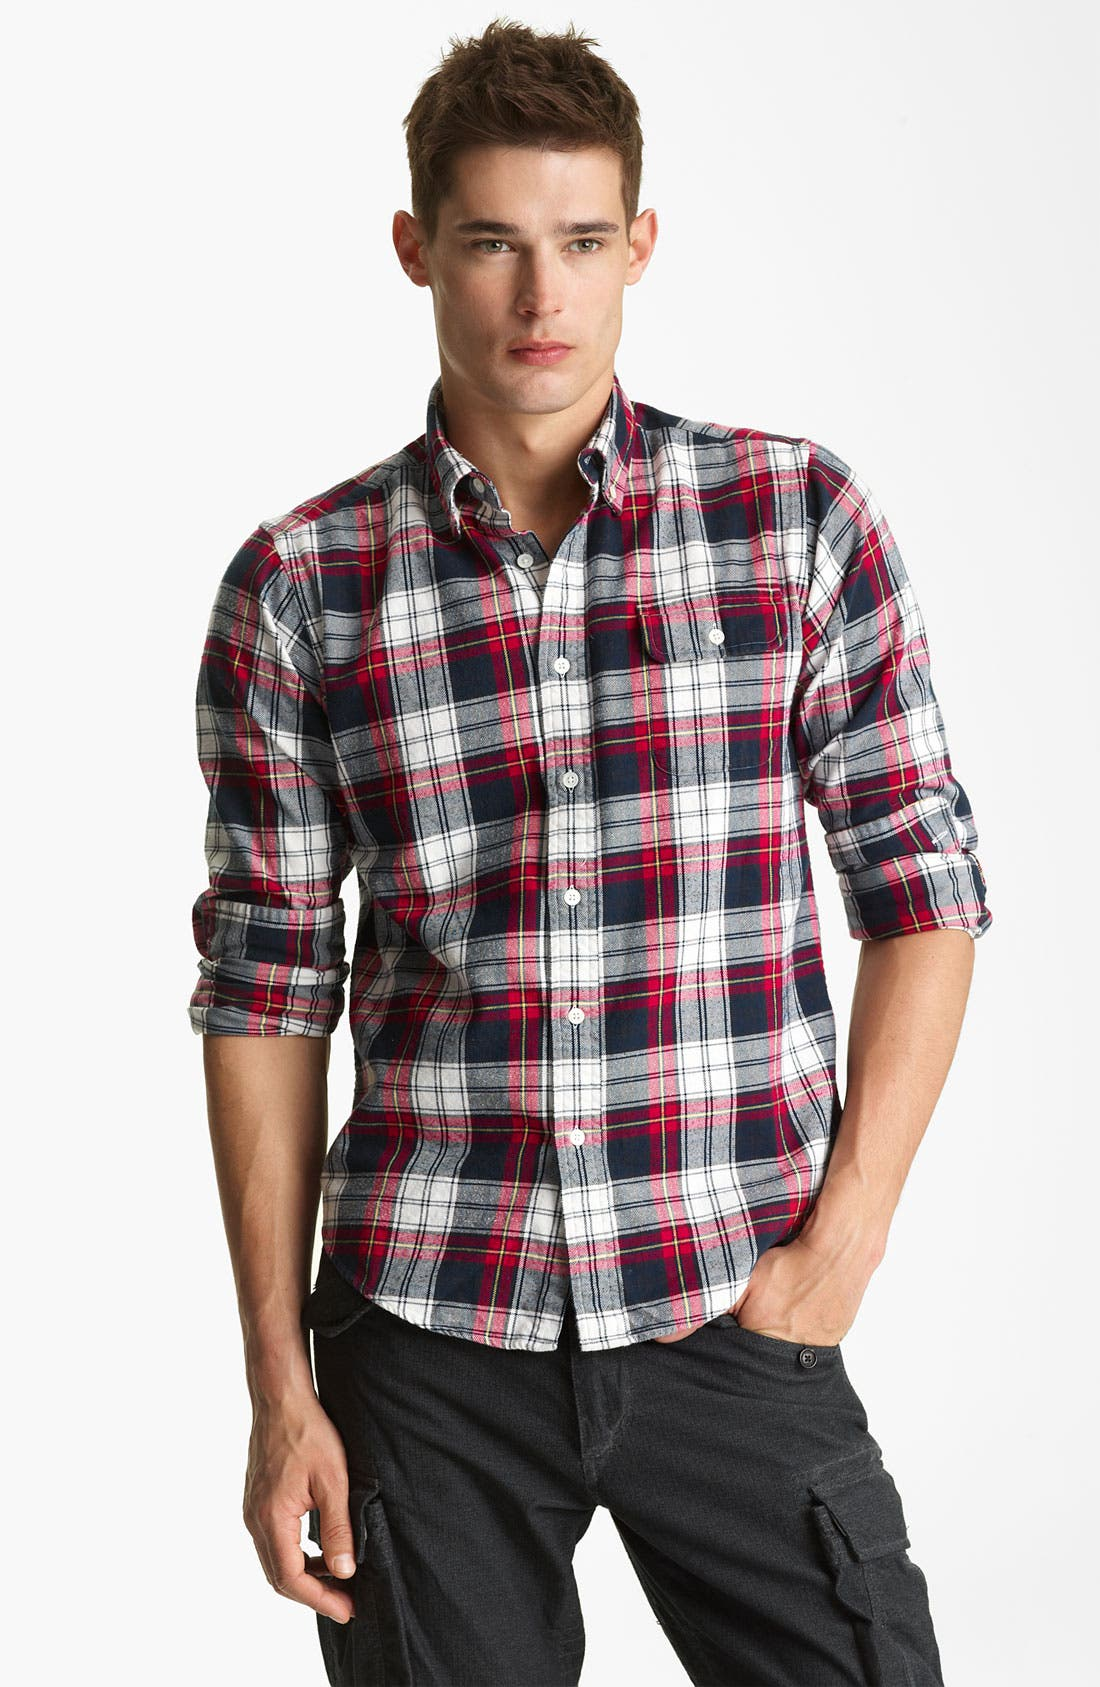 Alternate Image 1 Selected - Gant by Michael Bastian Cotton Flannel Shirt